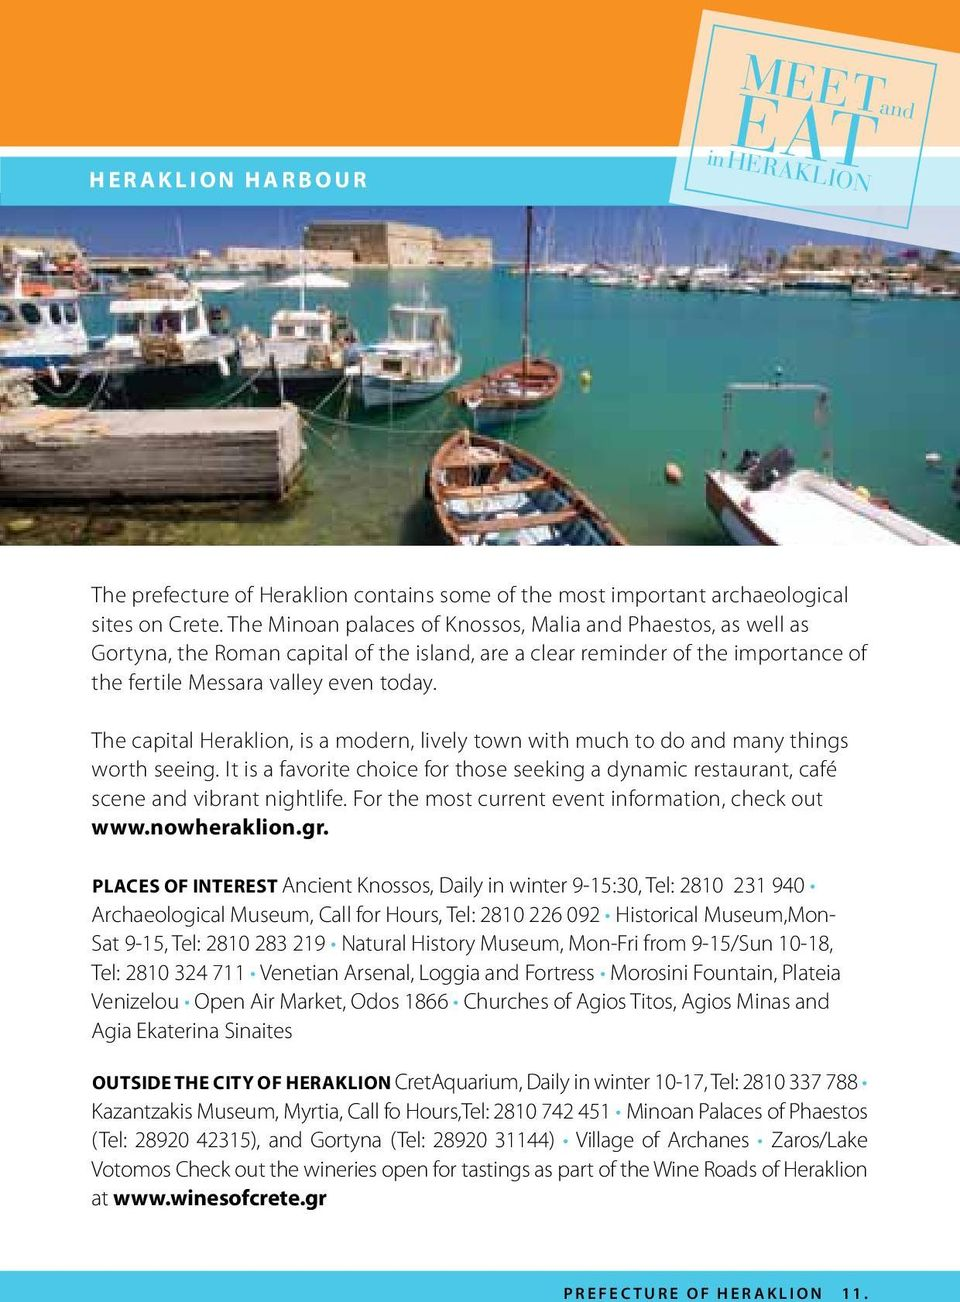 The capital Heraklion, is a modern, lively town with much to do and many things worth seeing. It is a favorite choice for those seeking a dynamic restaurant, café scene and vibrant nightlife.